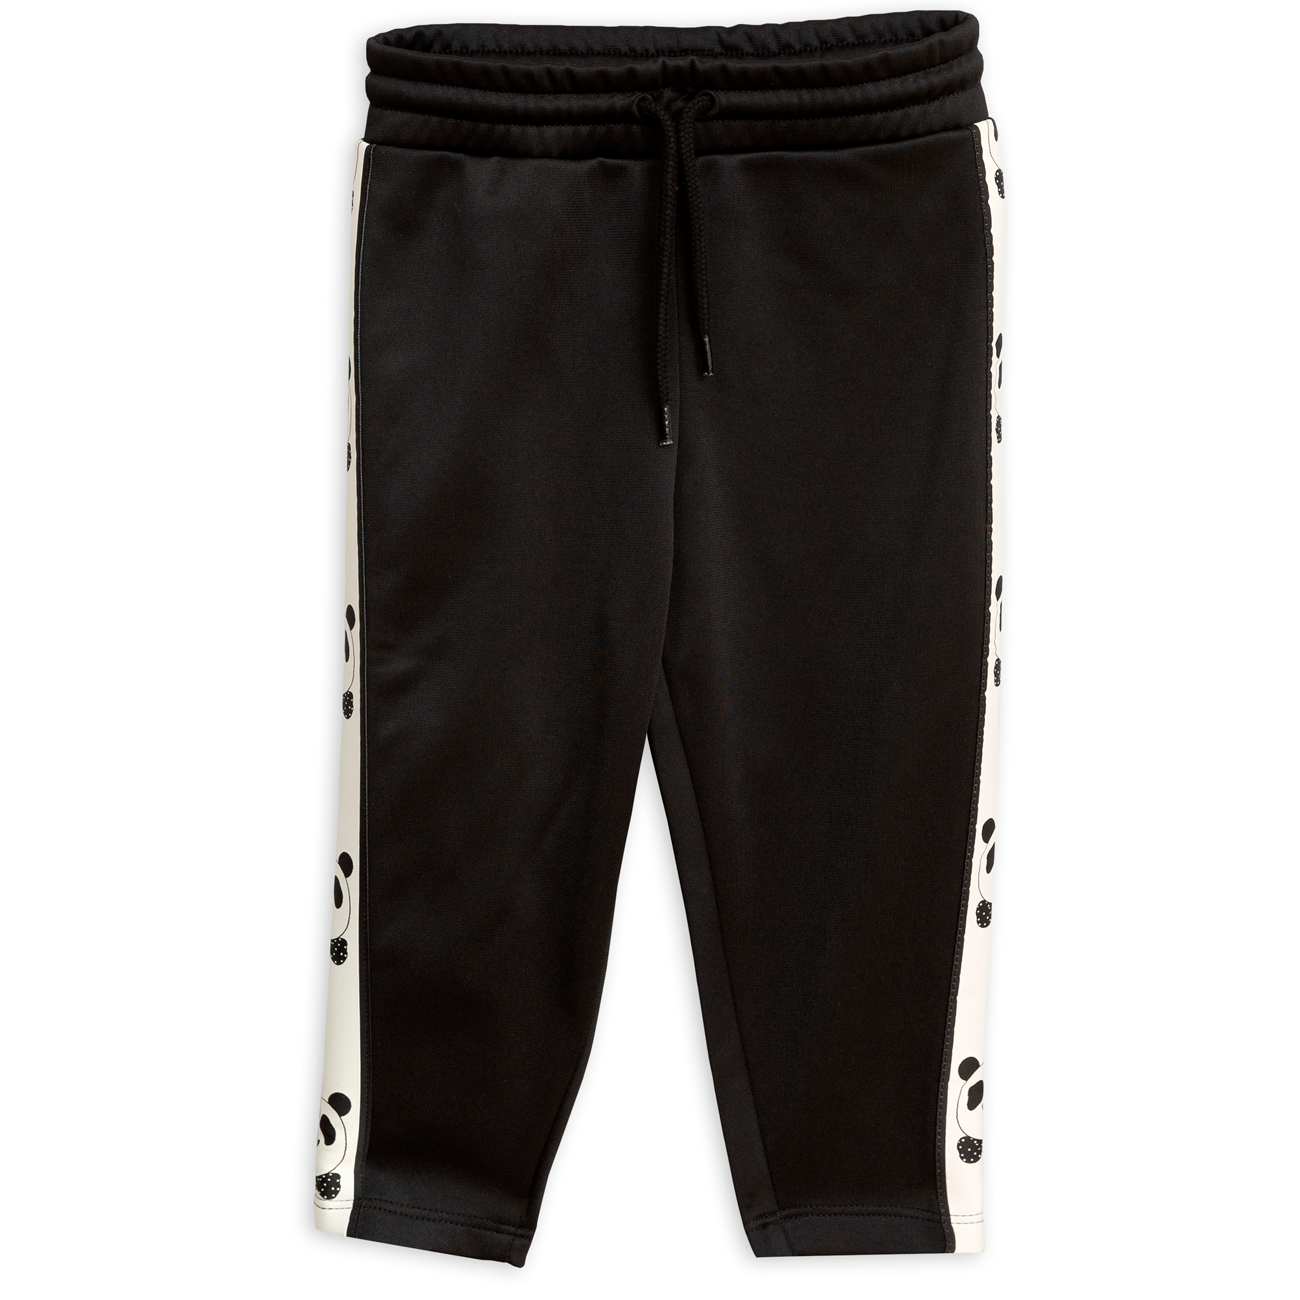 mini-rodini-bukser-pants-panda-panta-bukser-black-sort-1